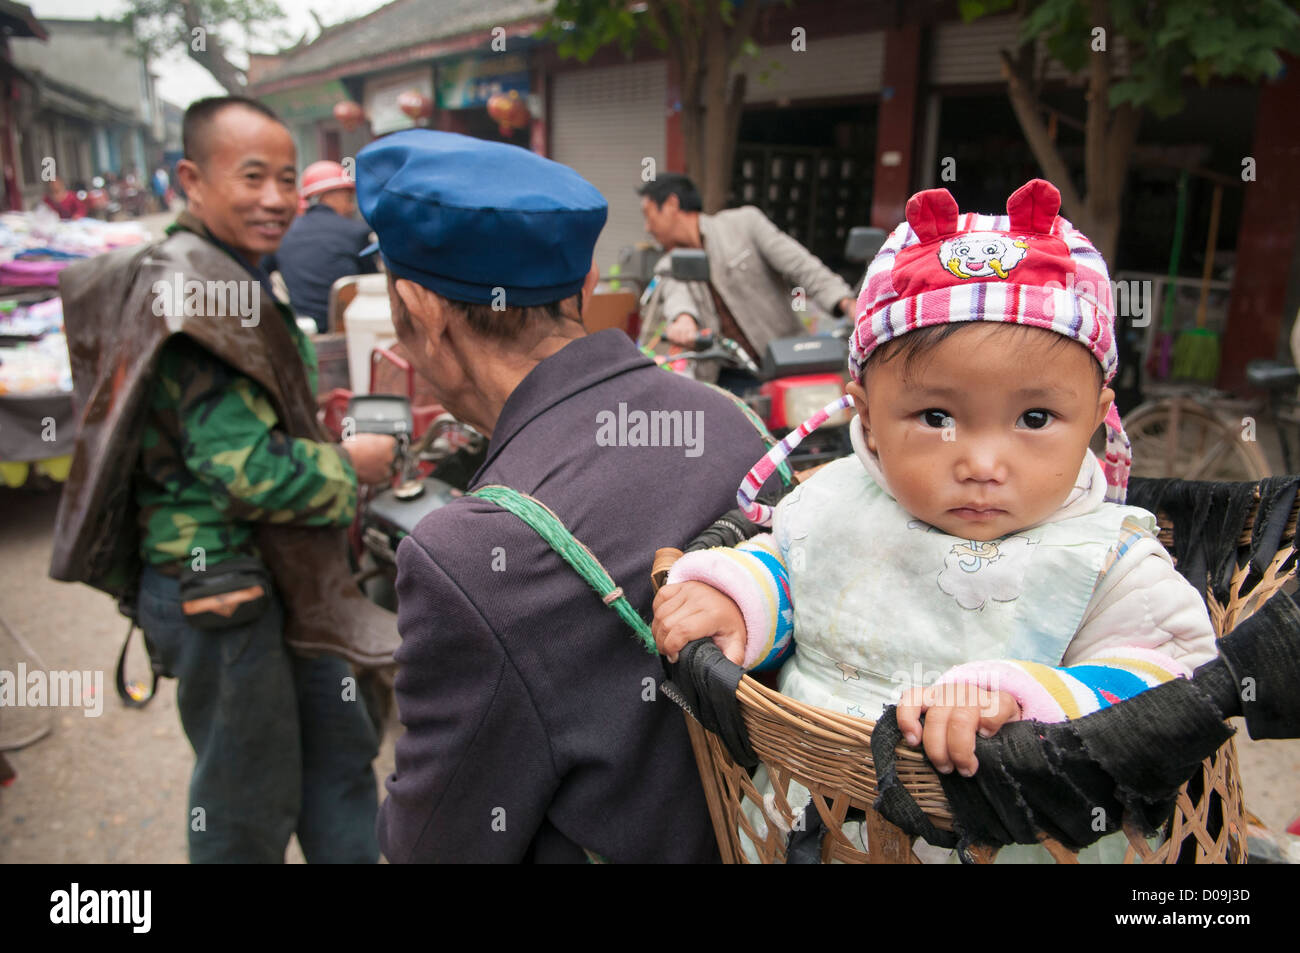 Baby boy is carried in basket by grandfather on busy market day in village on outskirts of Chengdu, Sichuan Province, - Stock Image